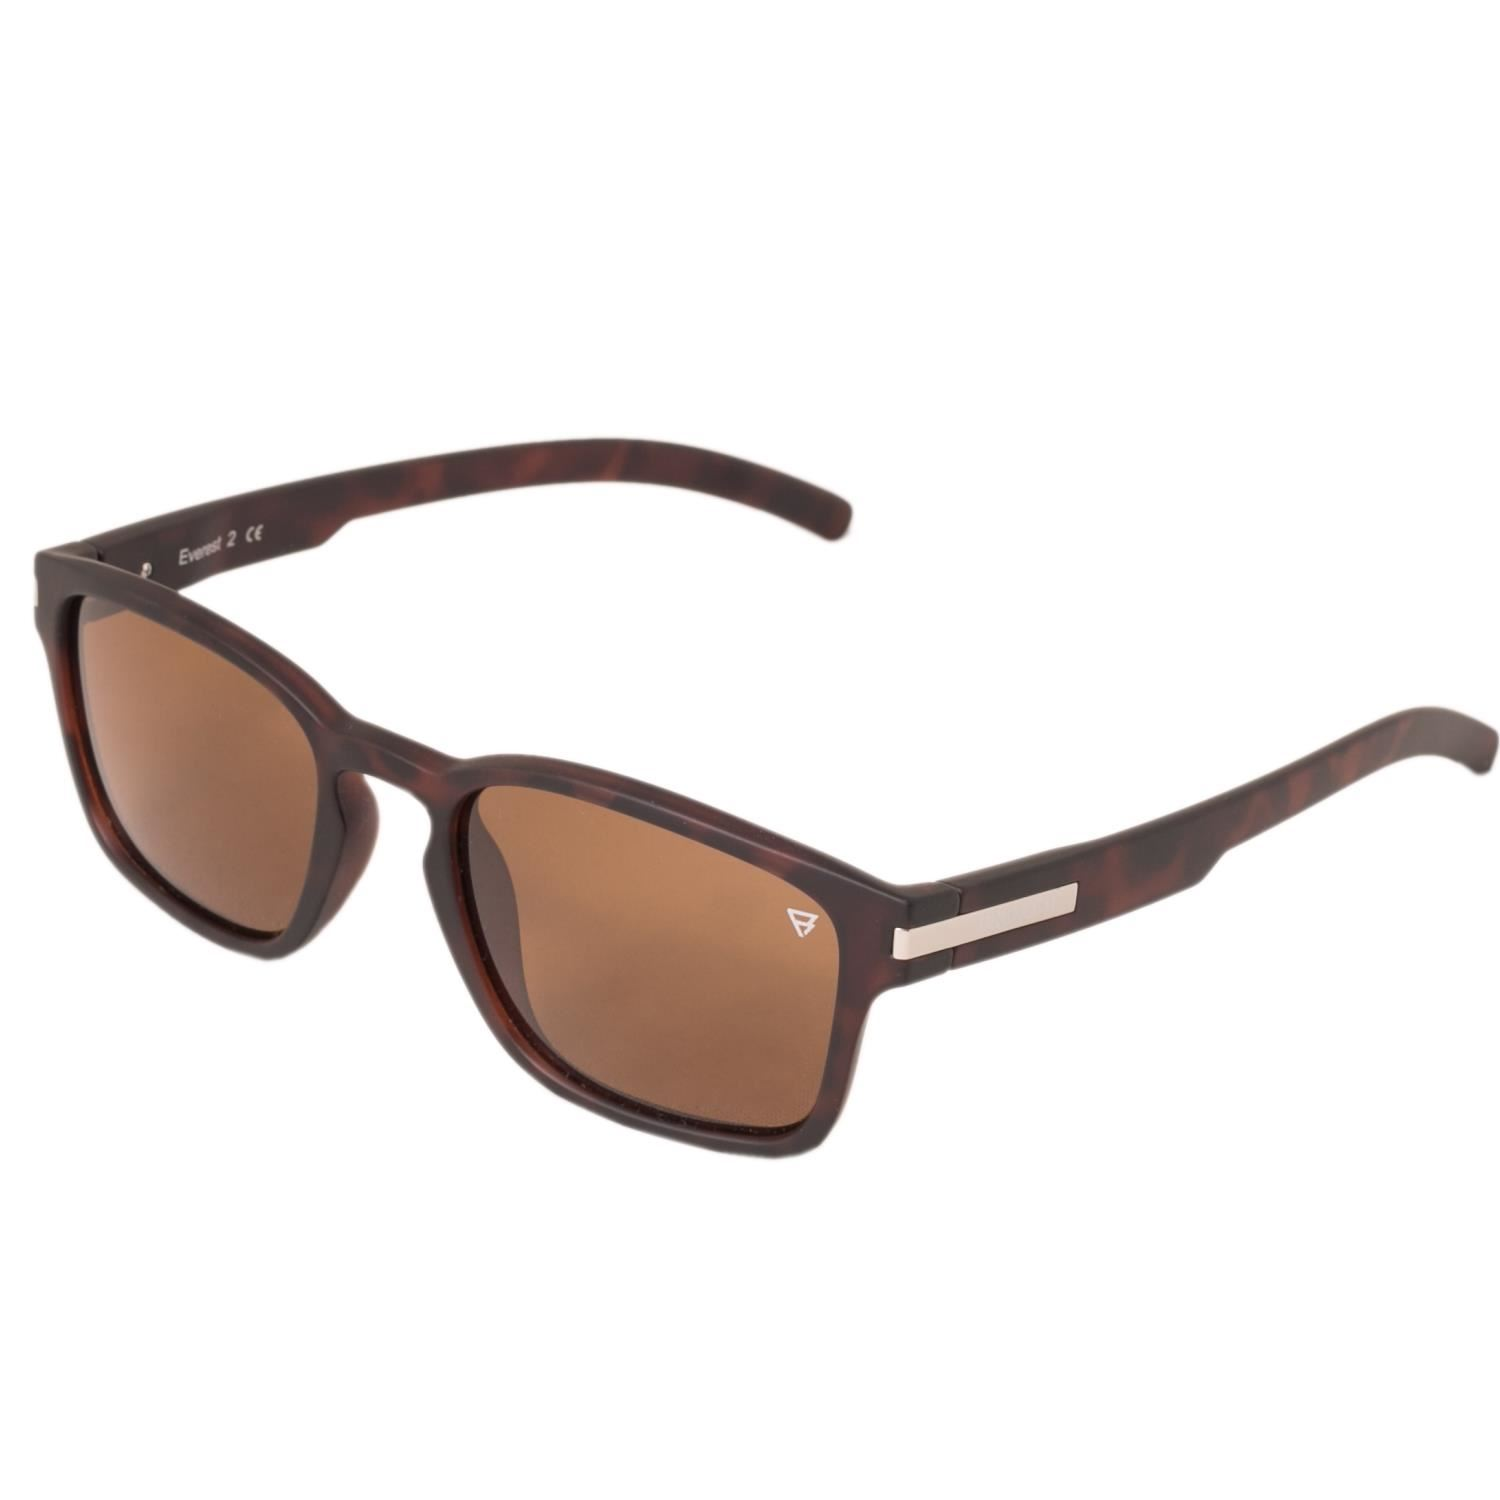 Brunotti Everest 2 Unisex Eyewear